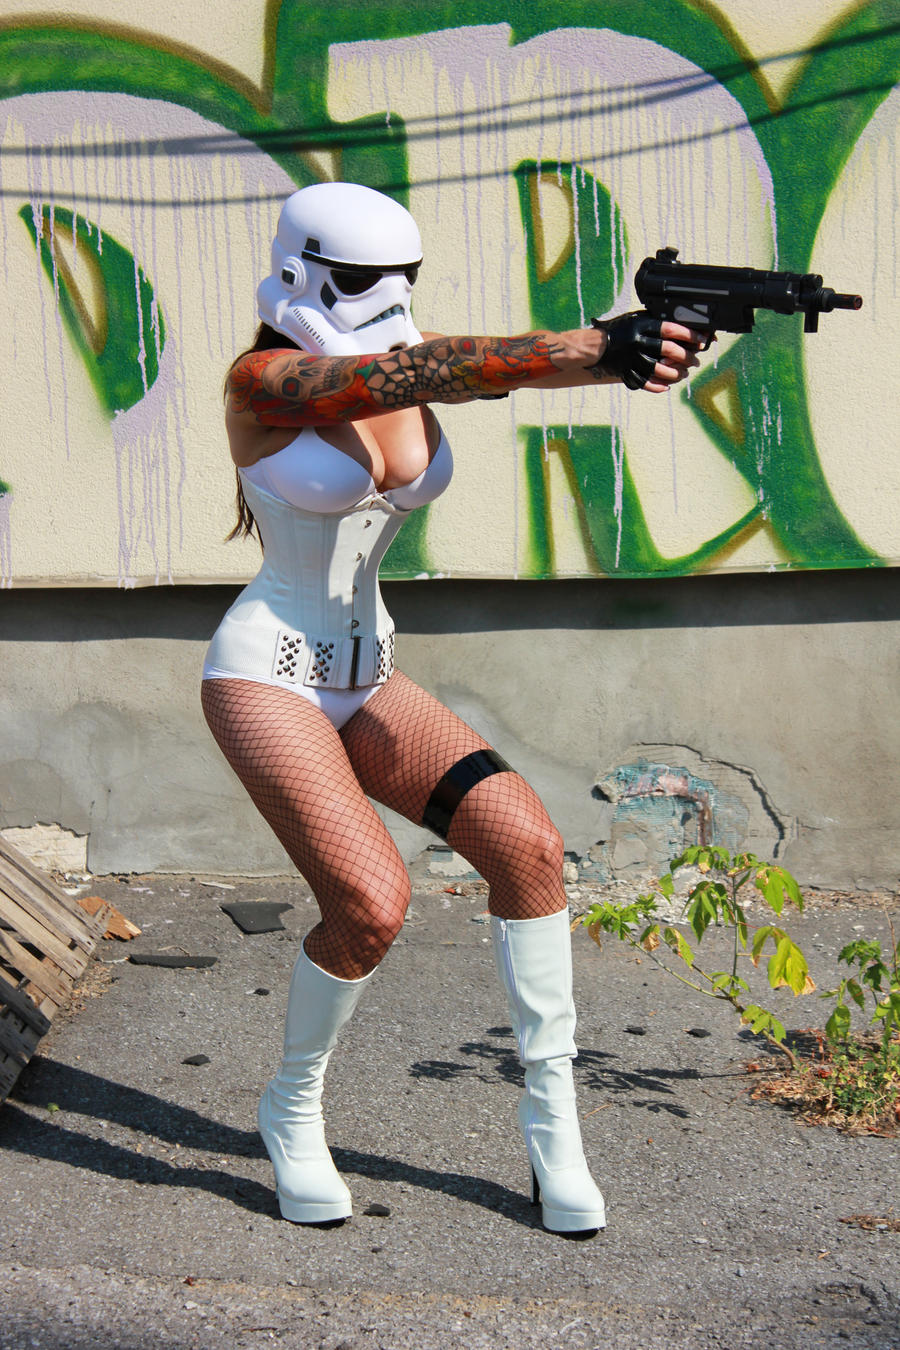 Star wars cosplay porn videos naked video